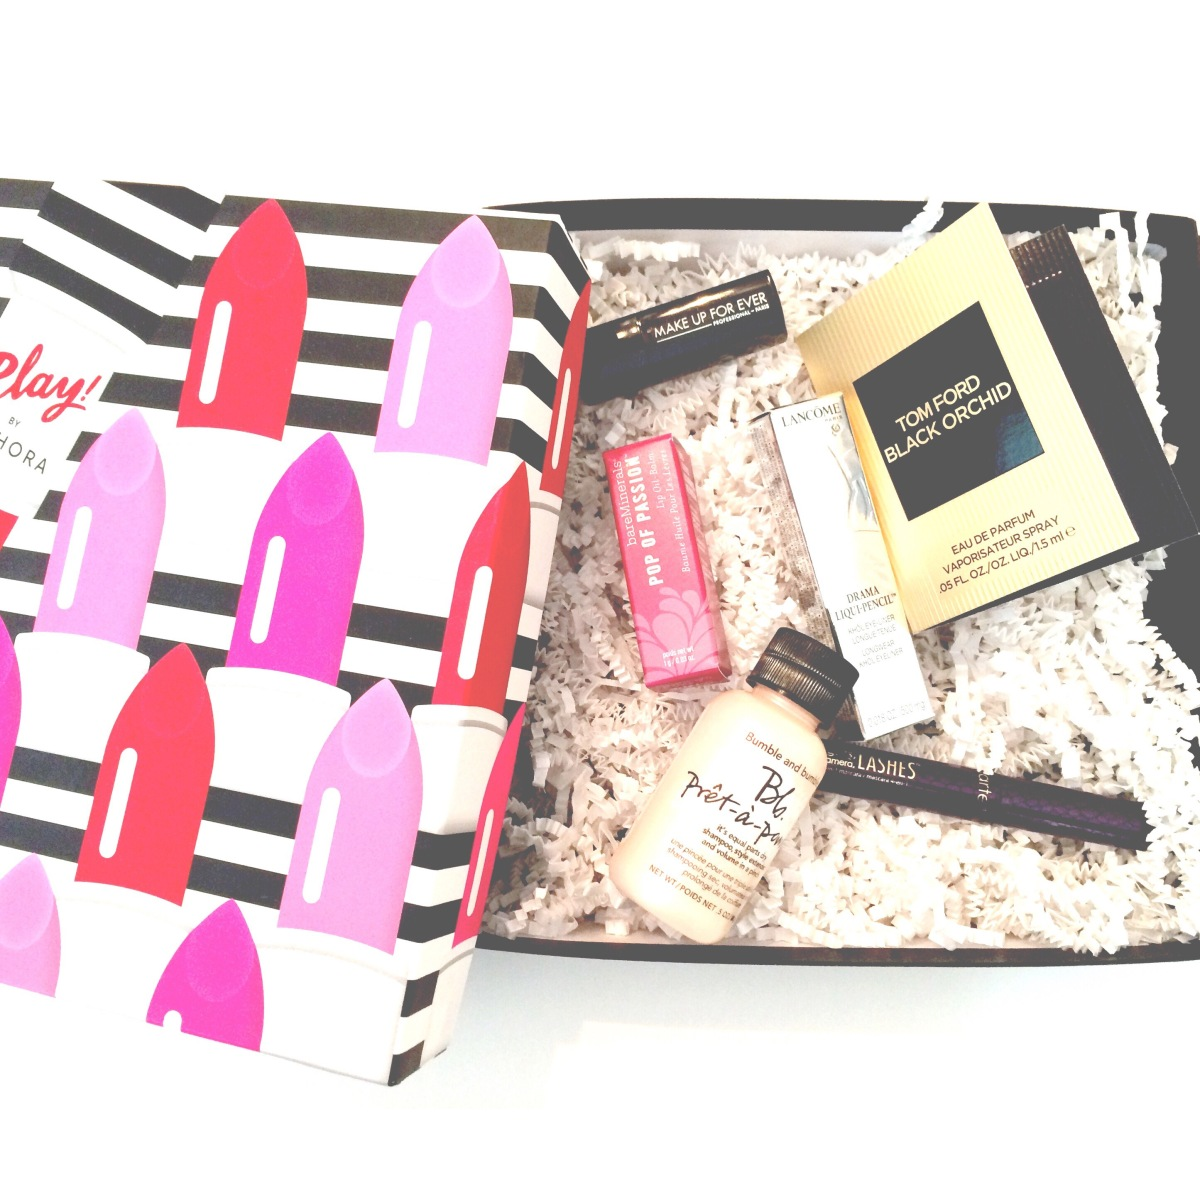 PLAY! By Sephora | February 2016